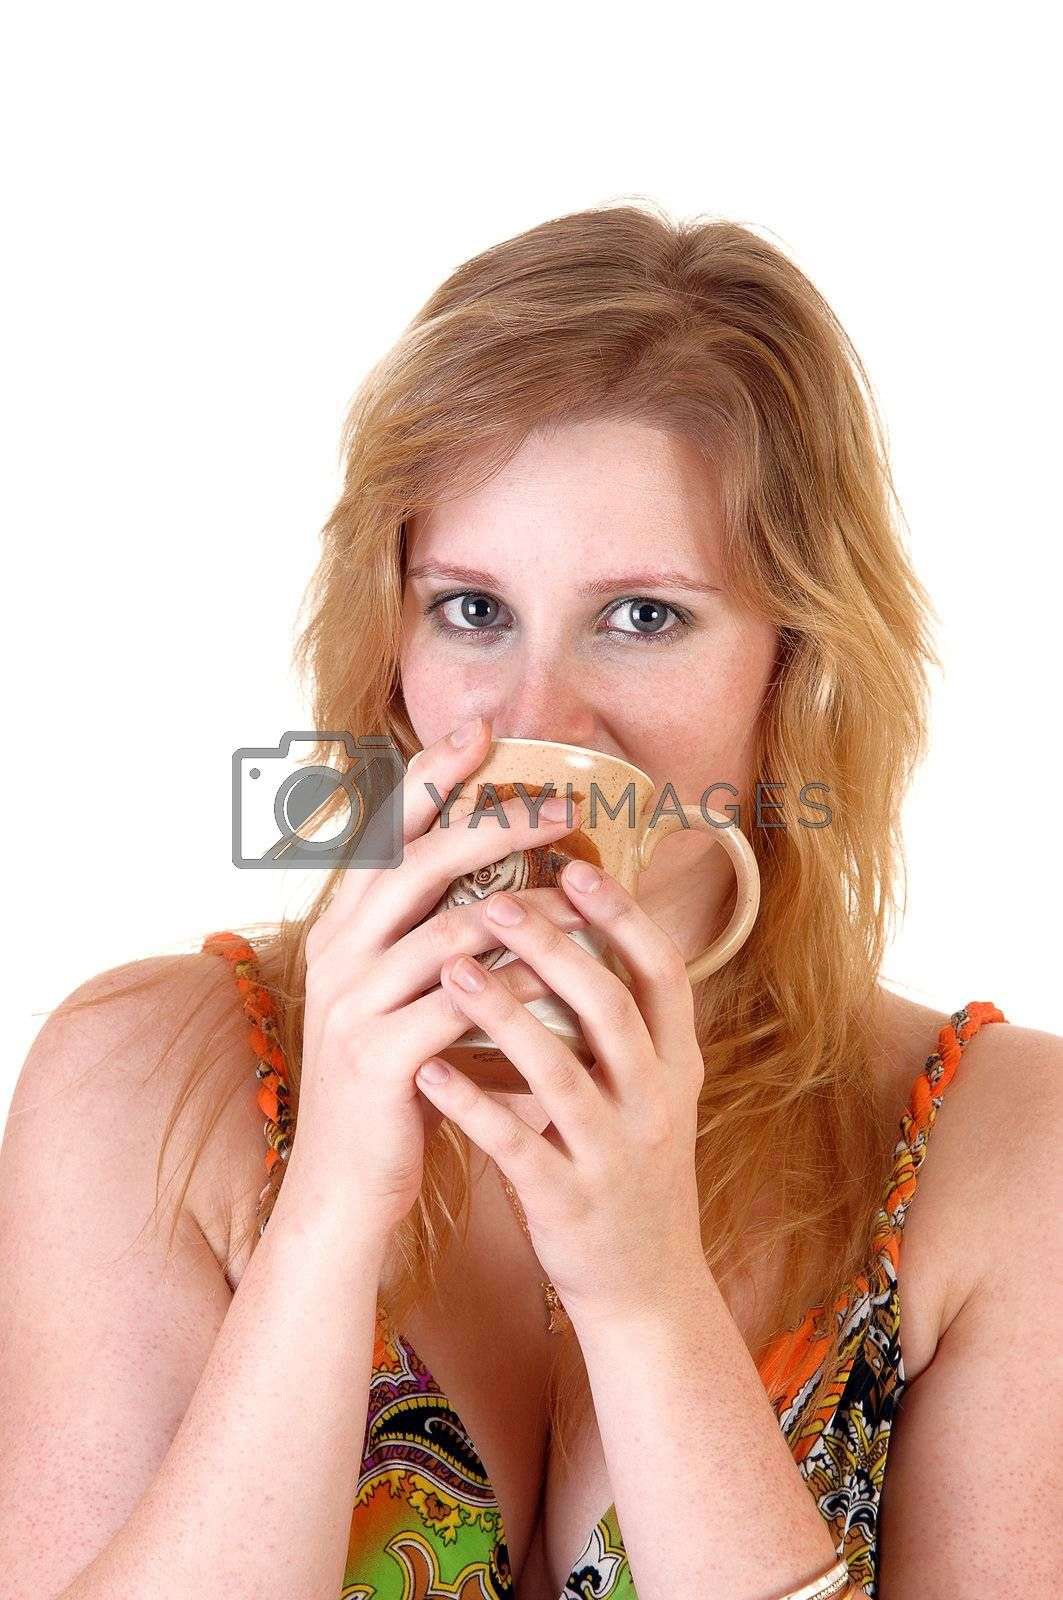 A beautiful blond teenager girl looking into the camera and drinking her coffee from a mug, in an colorful dress over white background.